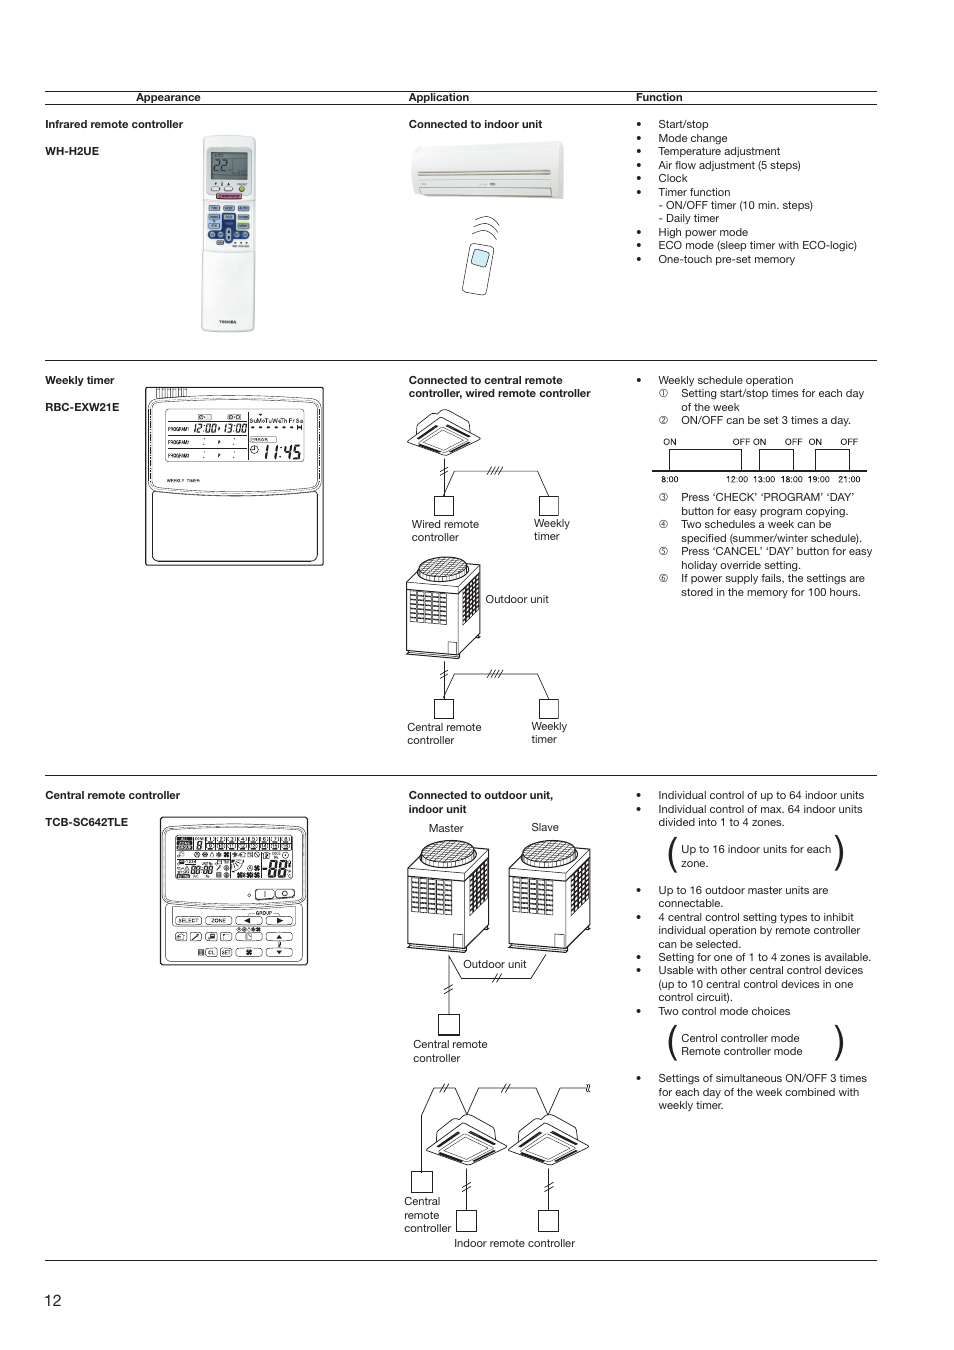 Toshiba SUPER MODULAR MULTI HFC R-410A User Manual | Page 12 / 108